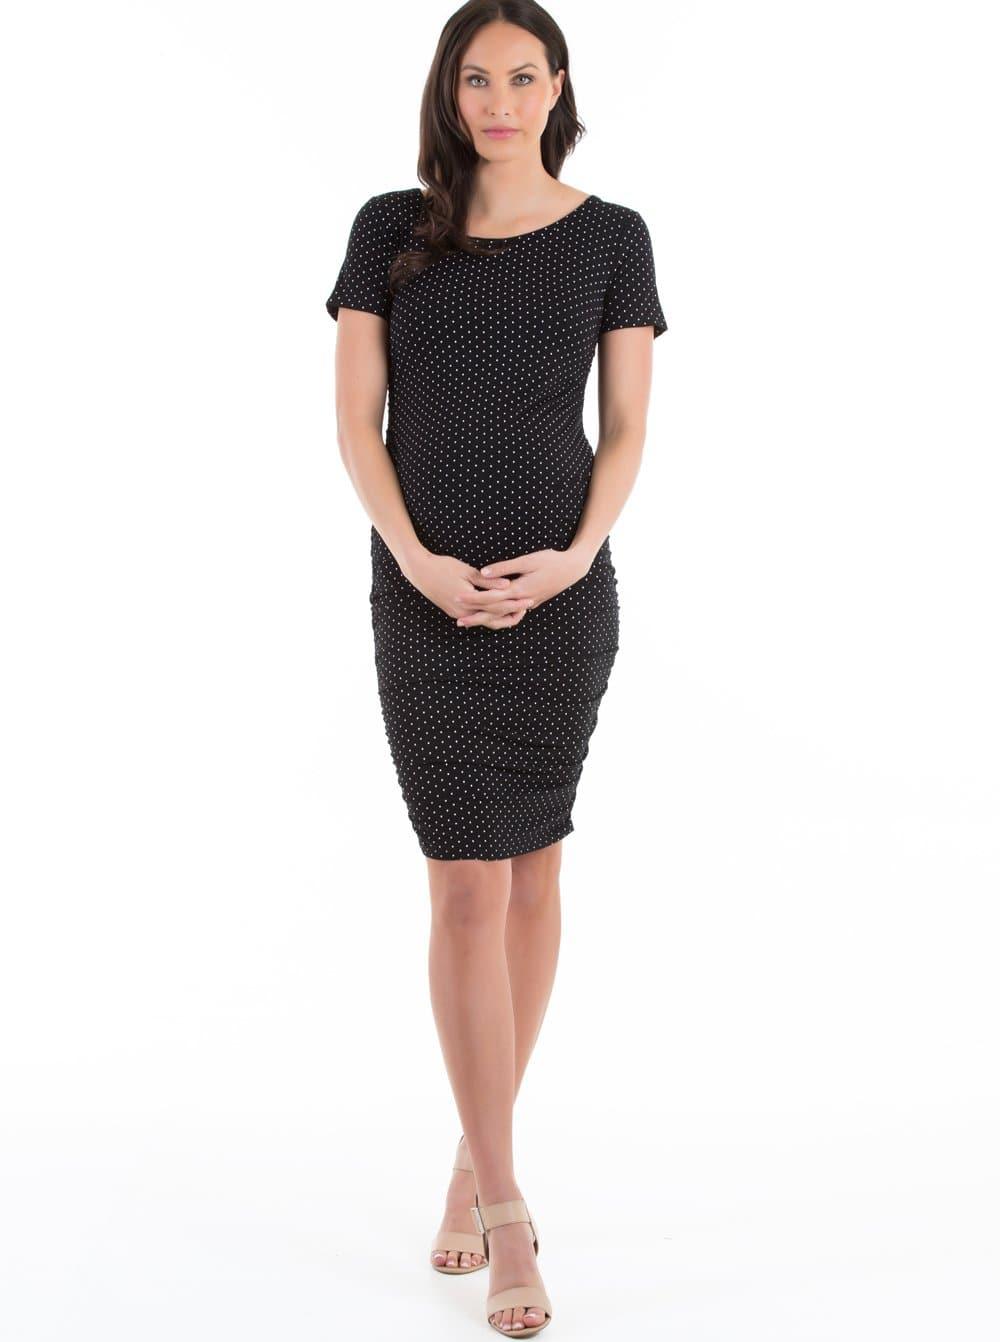 Body Hugging Maternity Dress - Black & White Spots